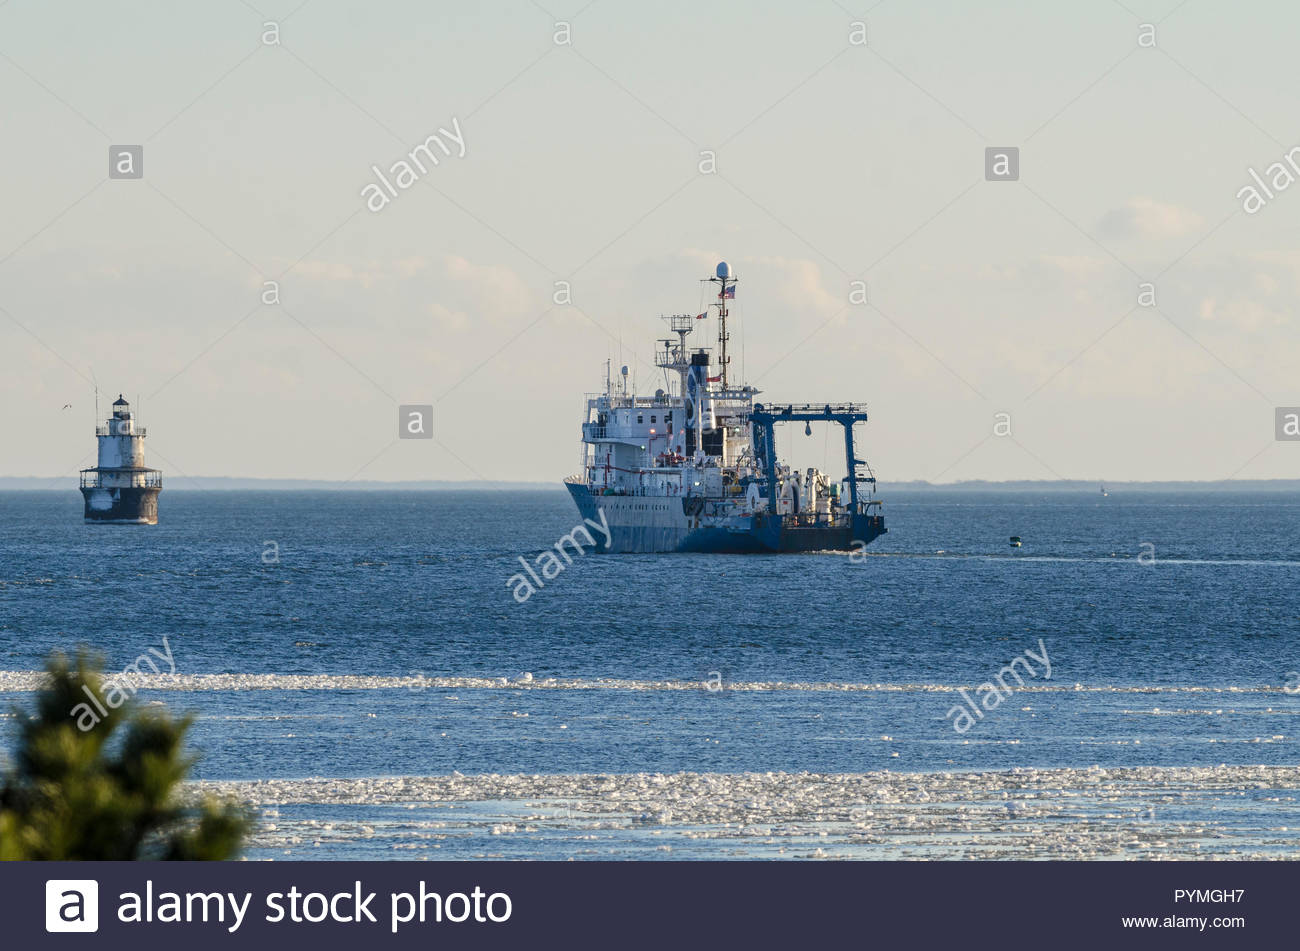 New Bedford, Massachusetts, USA - January 9, 2018: Research vessel Ocean Researcher leaving New Bedford with Butler's Flat lighthouse in background - Stock Image